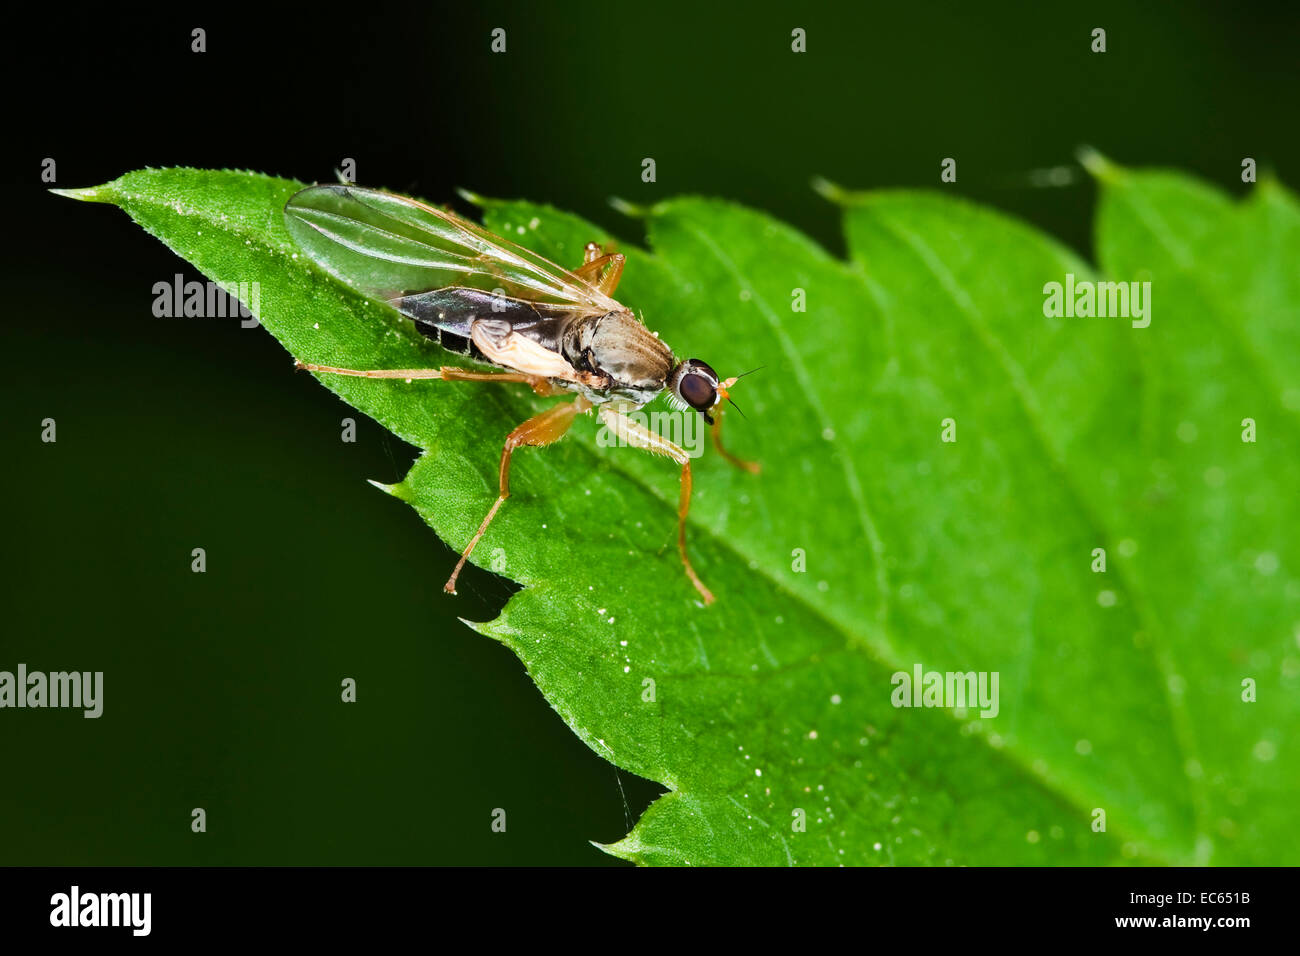 Fly order Diptera, suborder Brachycera Stock Photo